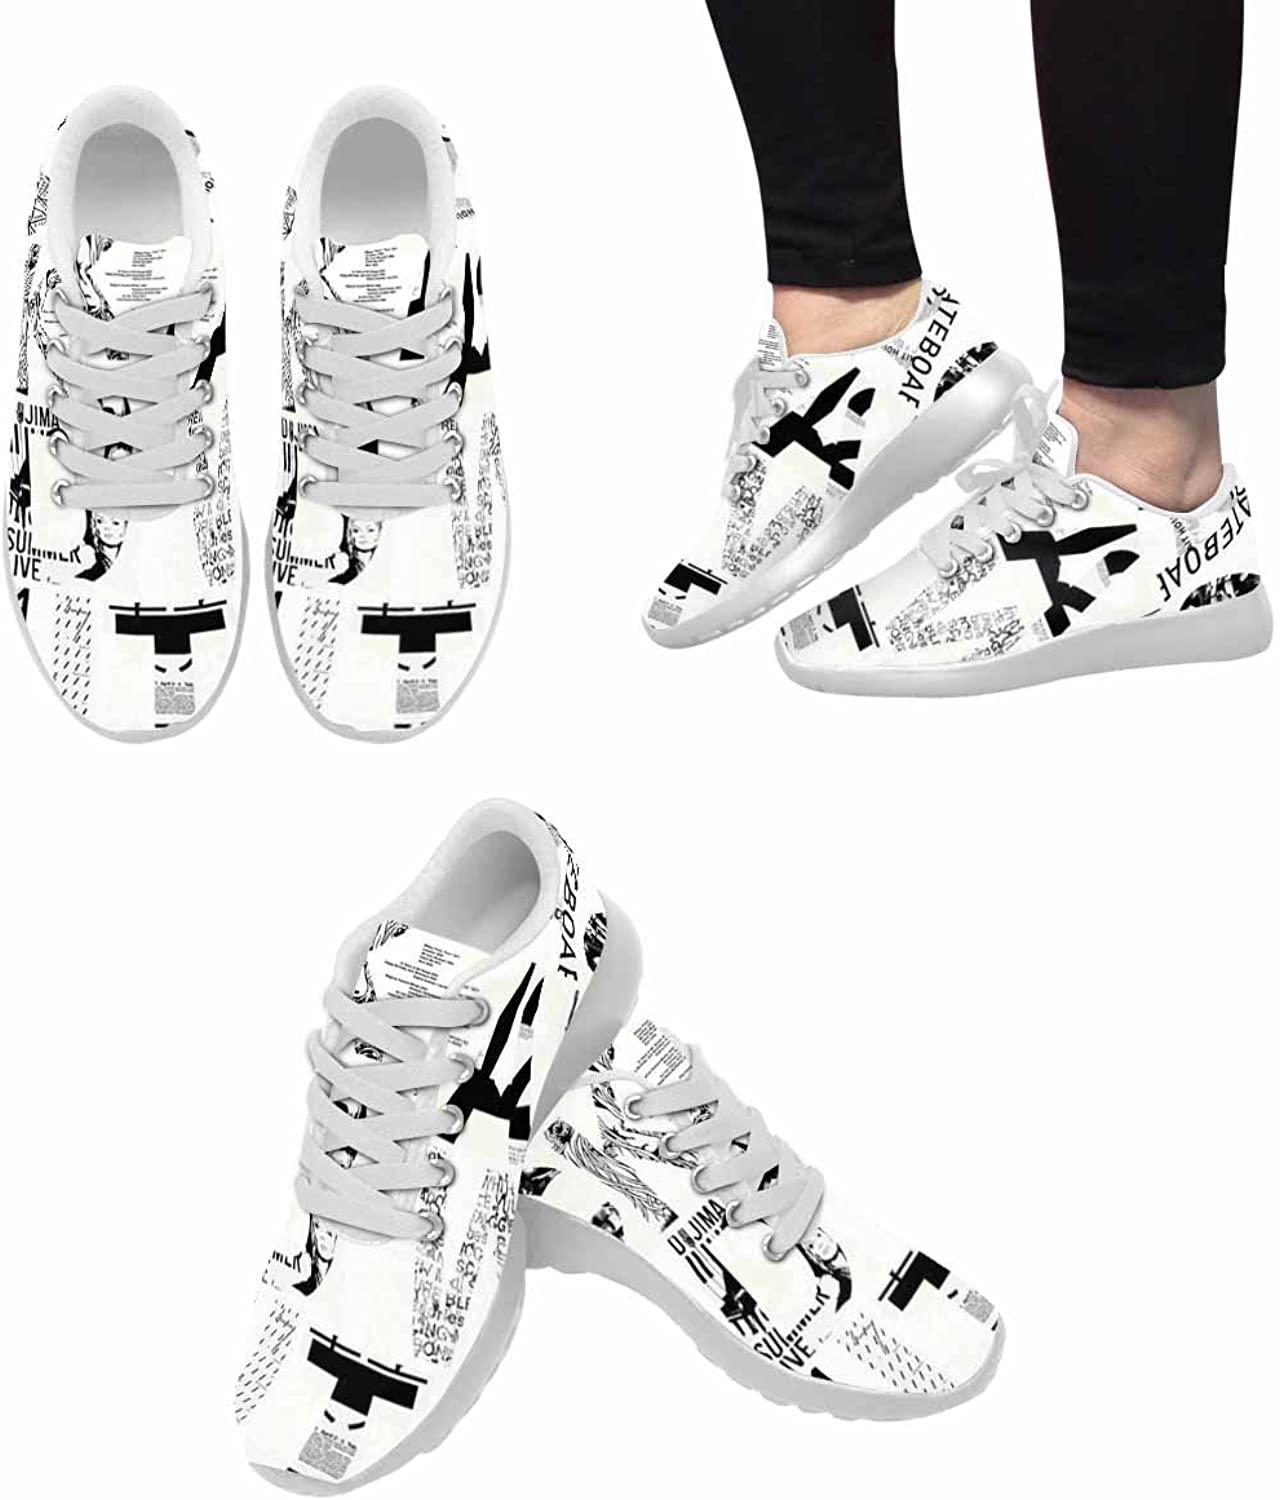 VIC Women's Sports Fitness Sneakers